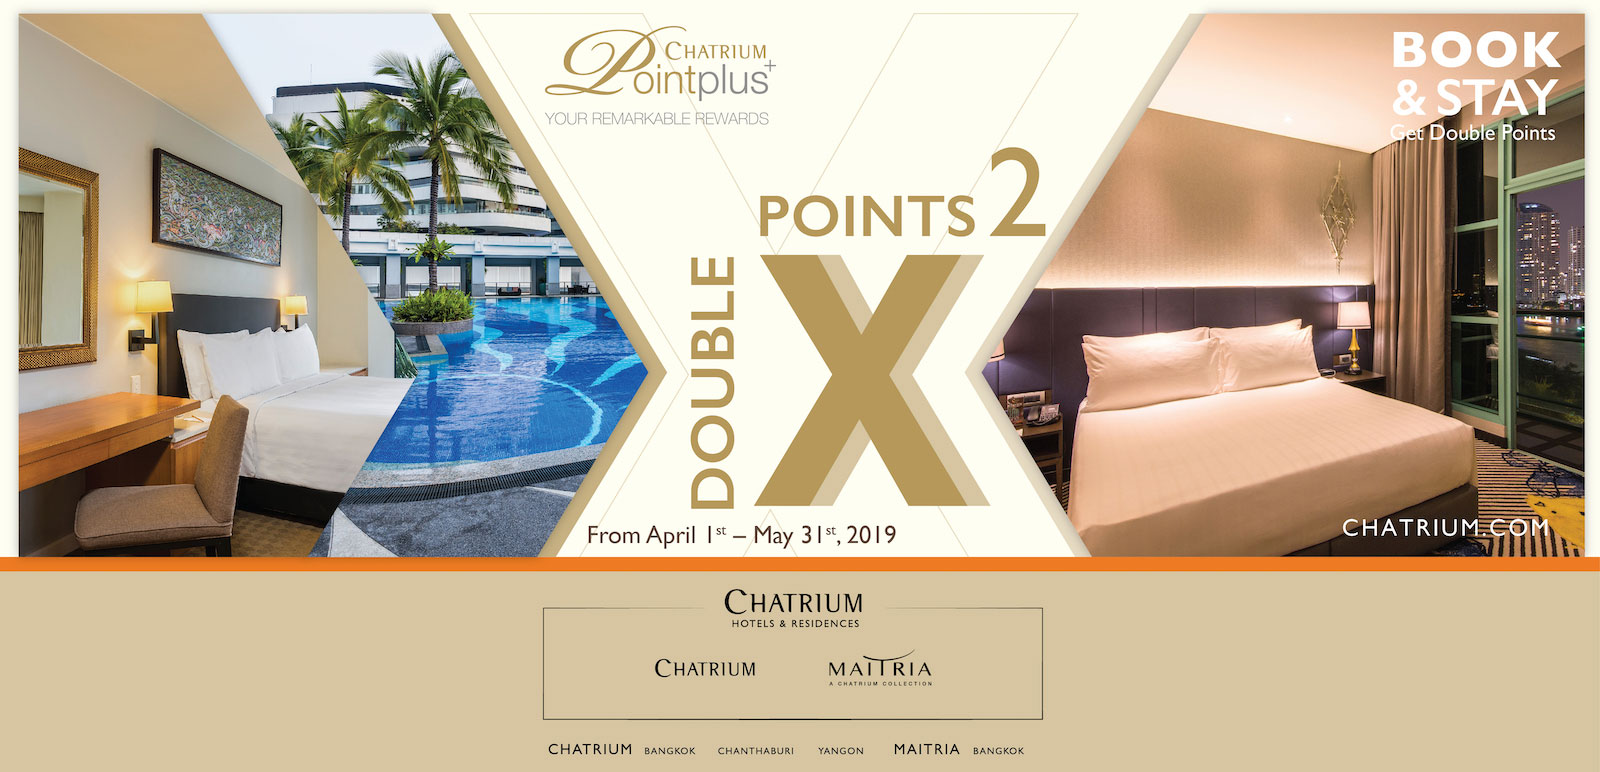 Book now get double points